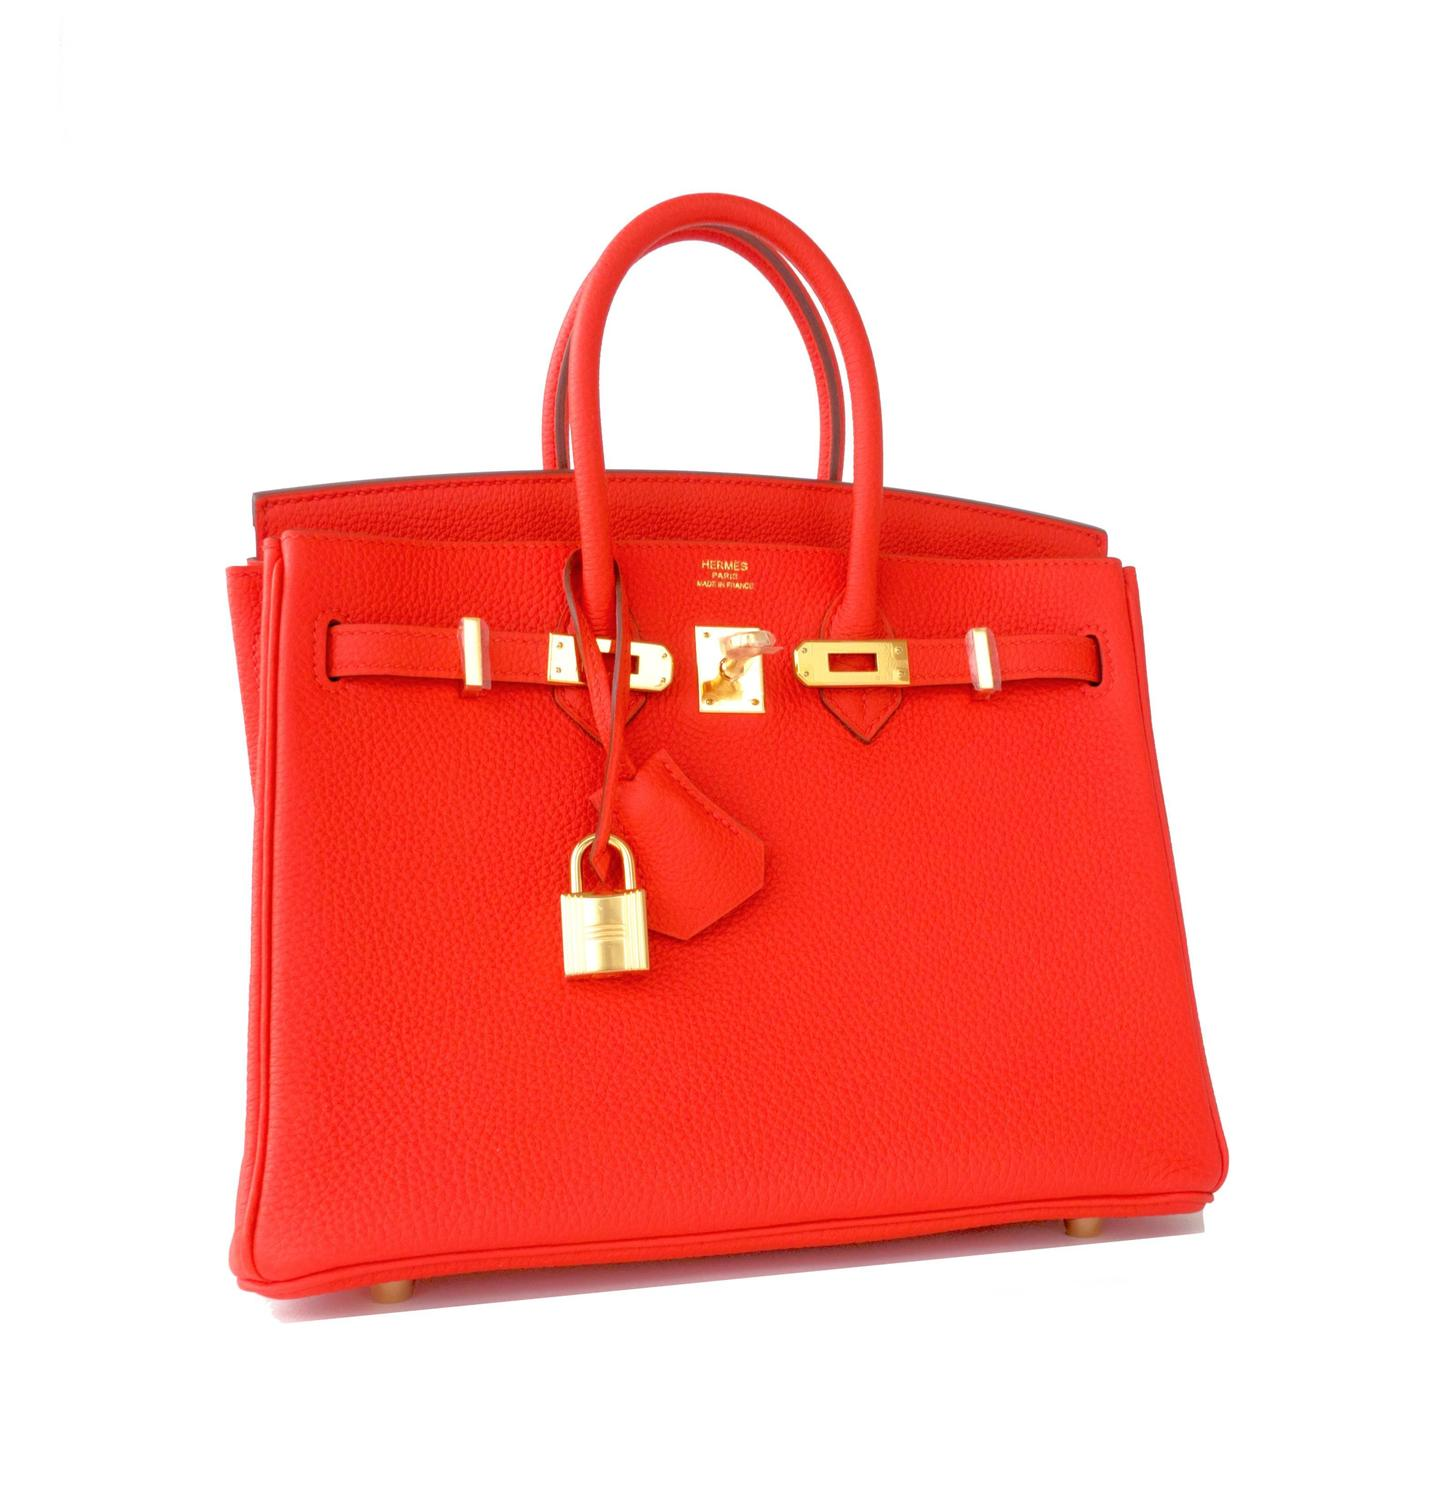 hermes So-Kelly capucine orange